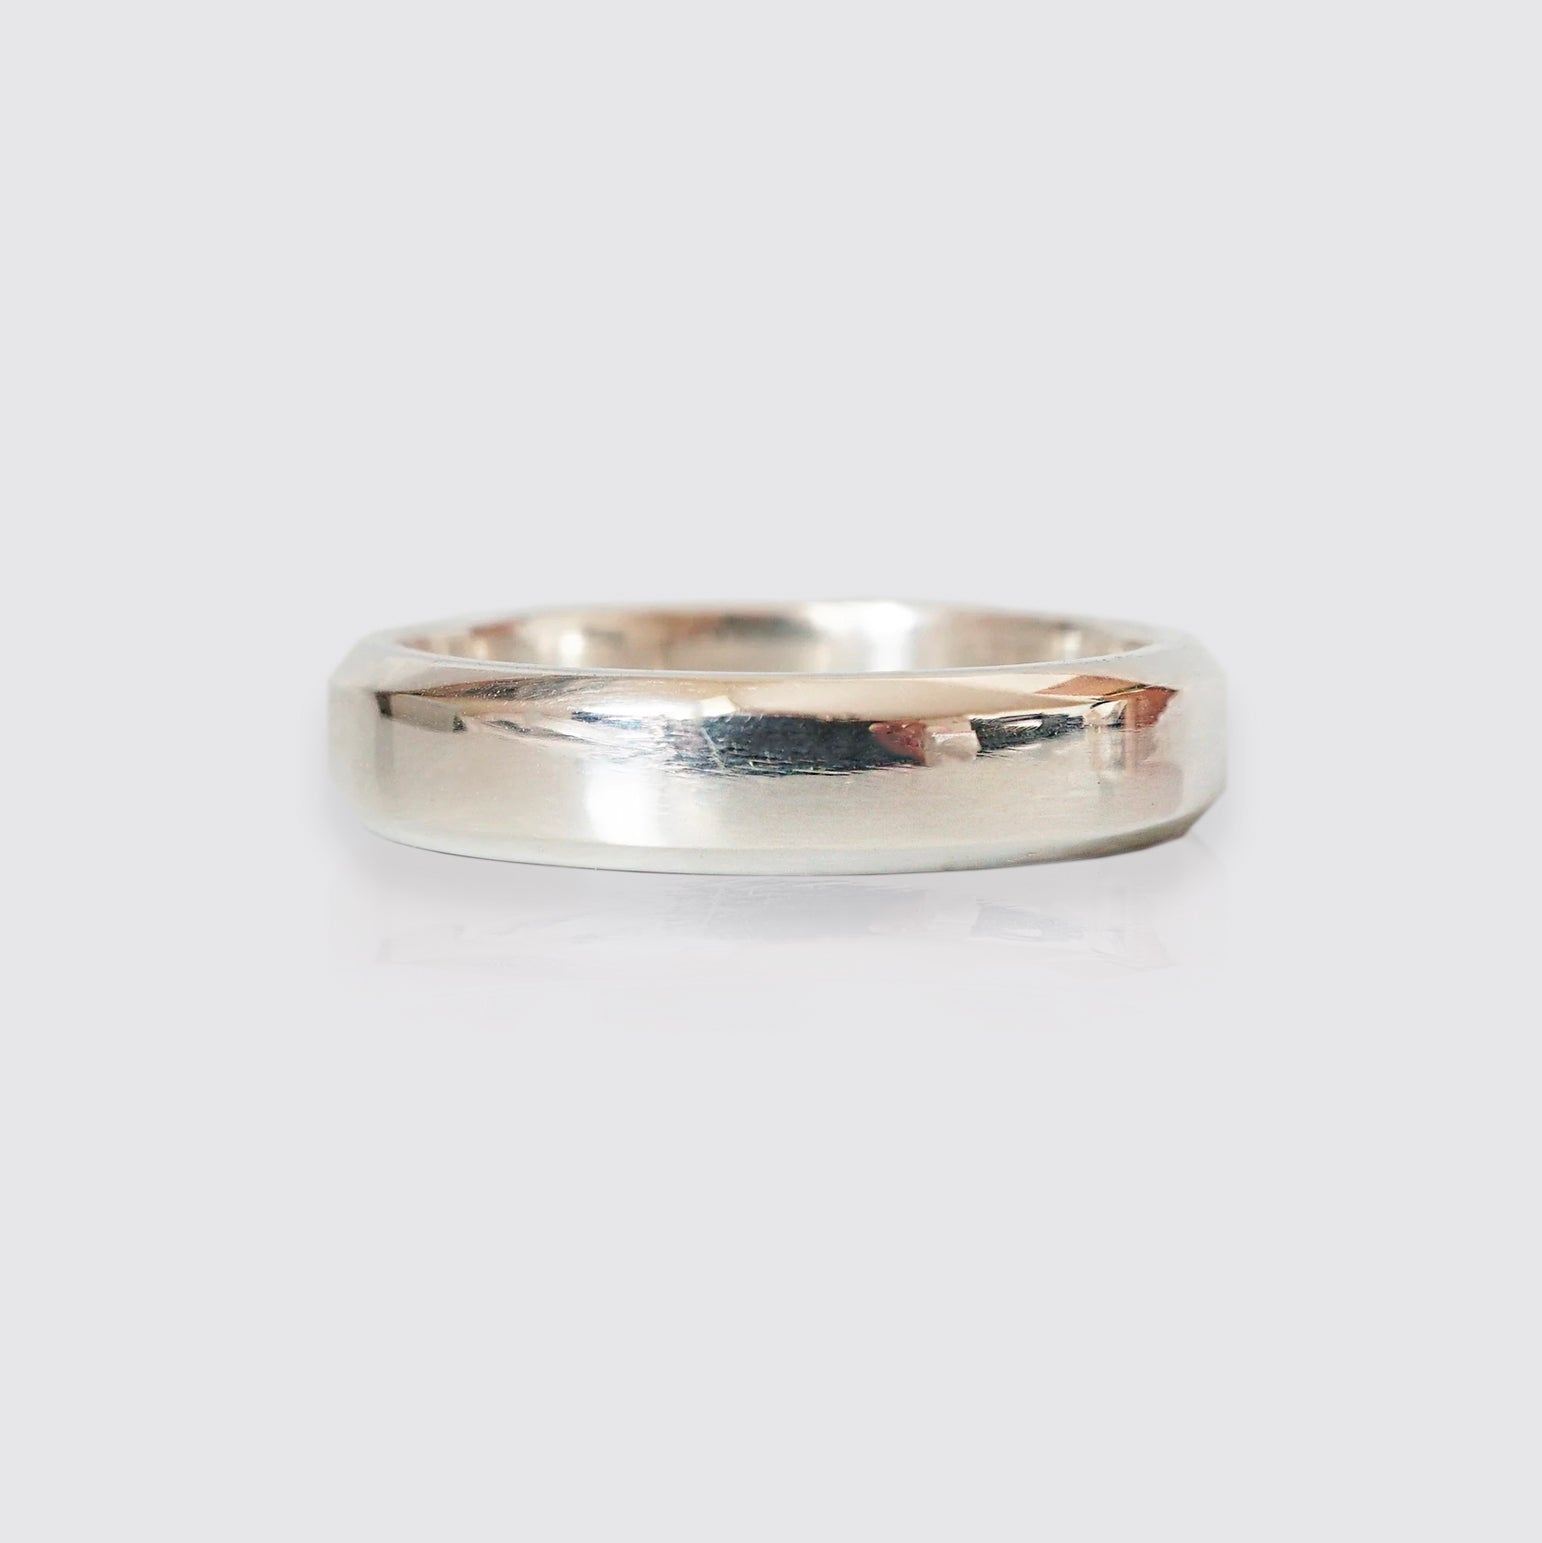 Chevron Beveled Ring Band, 5mm